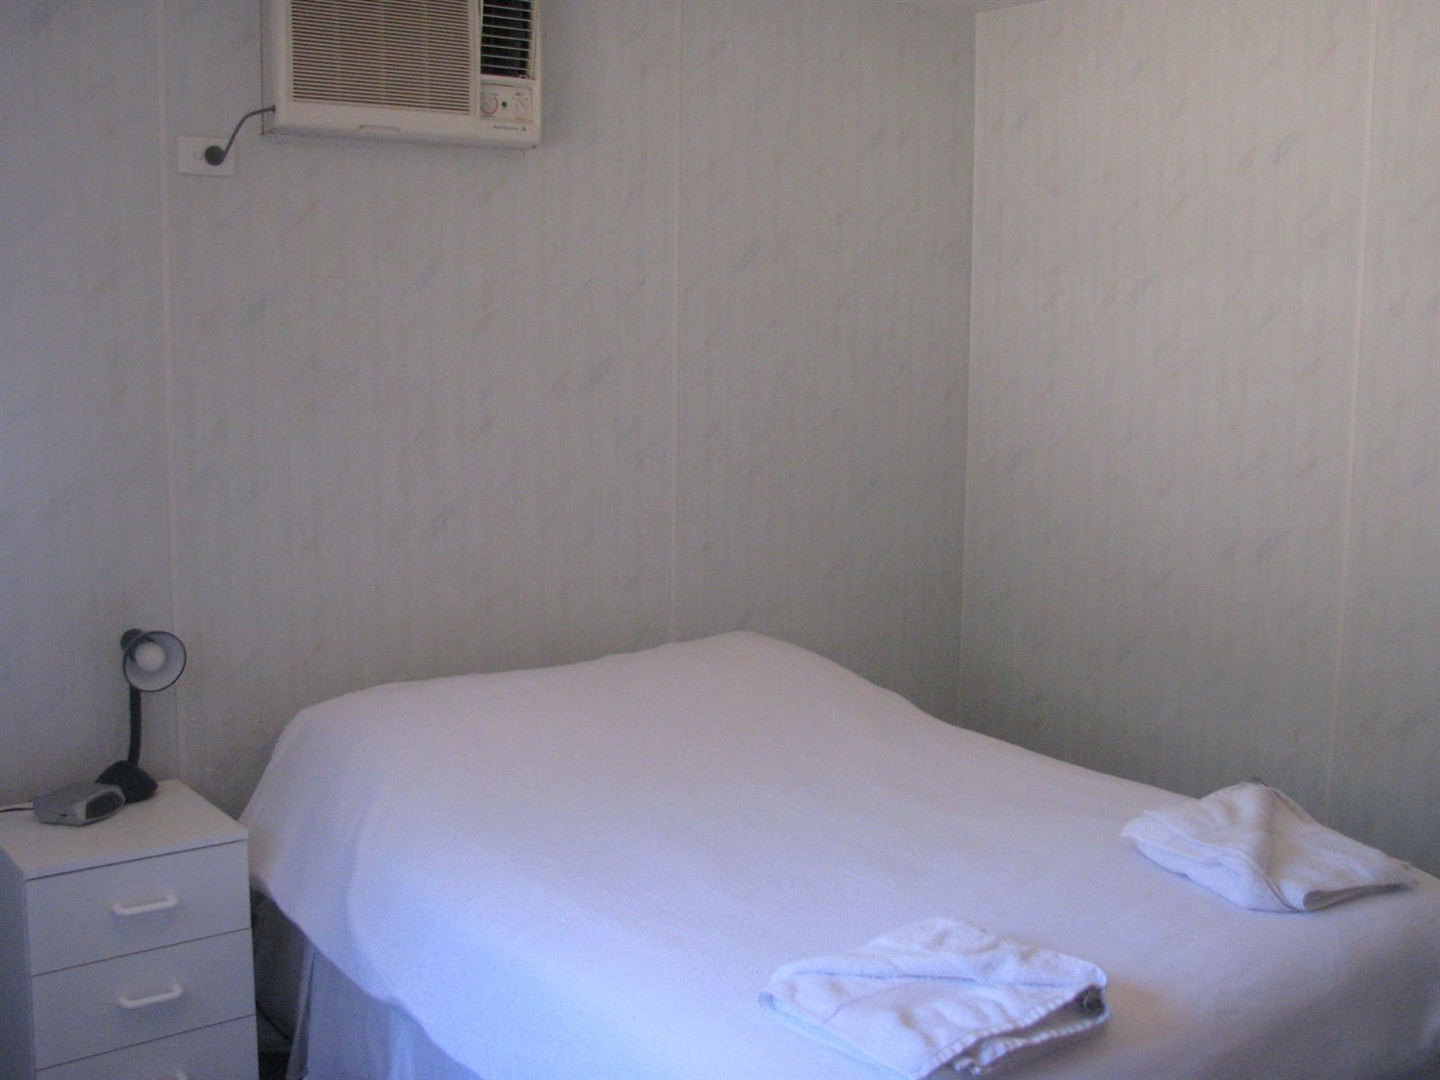 Park Unit Bedroom